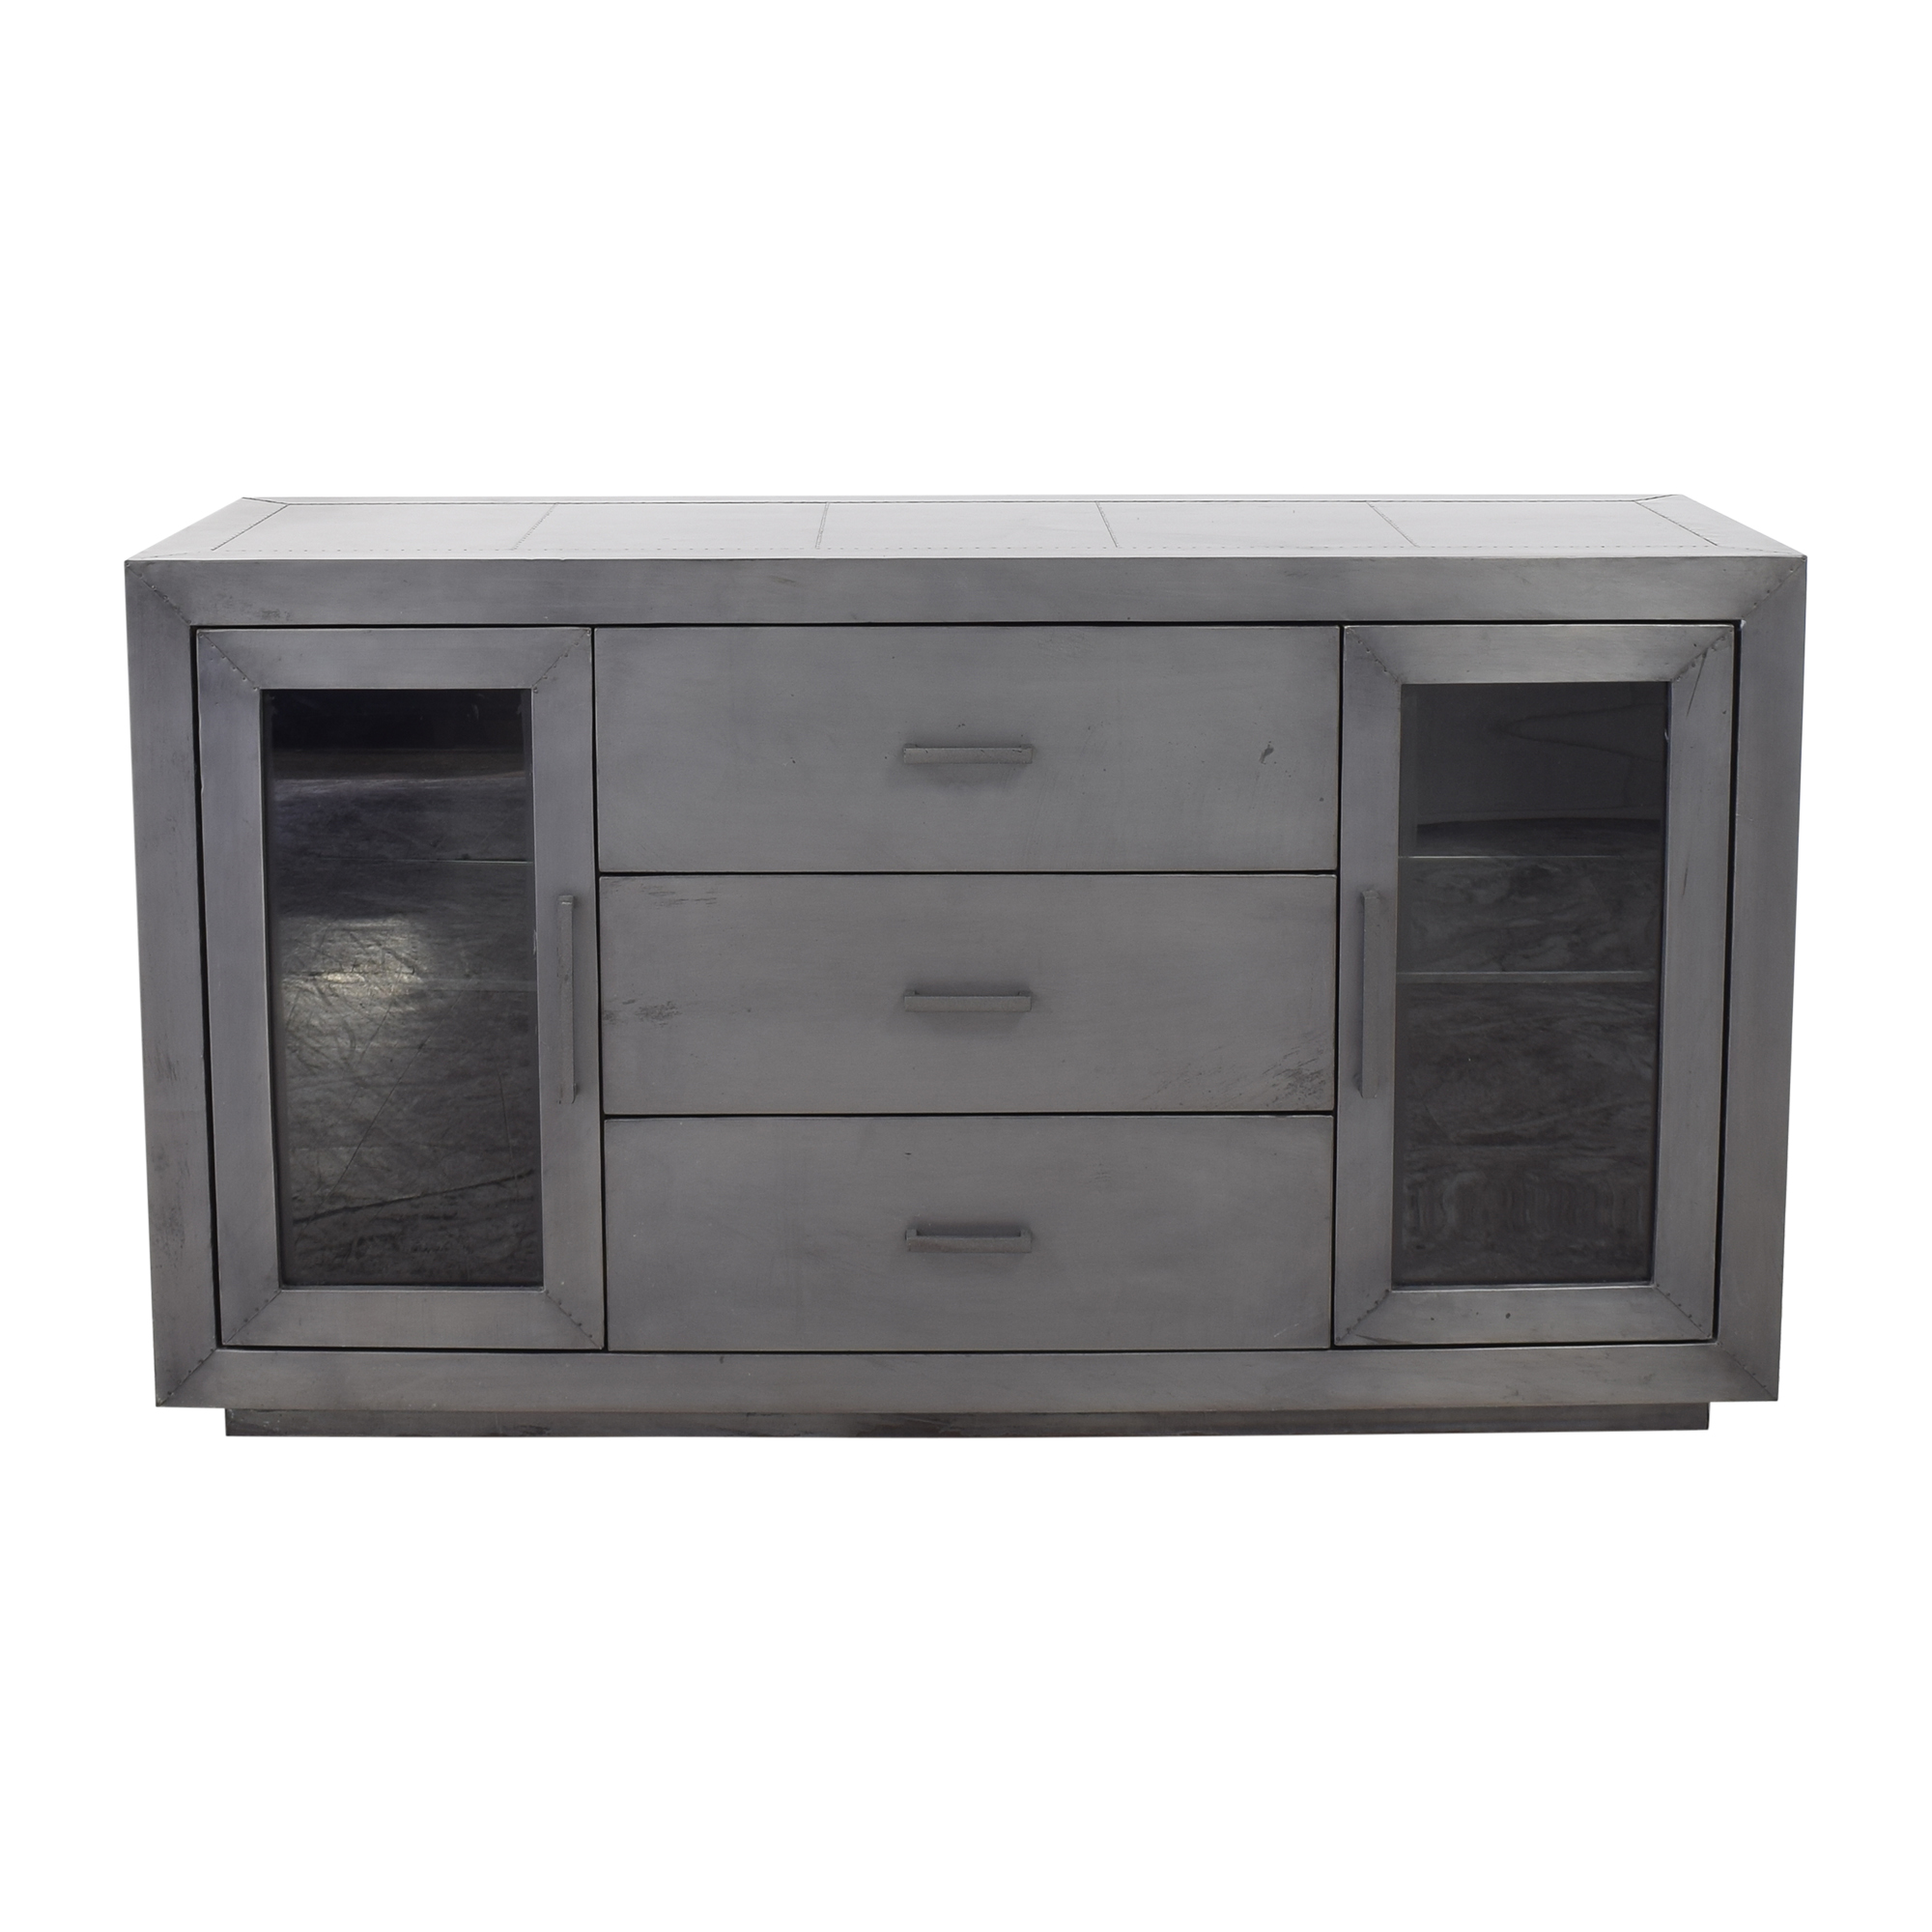 Restoration Hardware Restoration Hardware La Salle Sideboard for sale